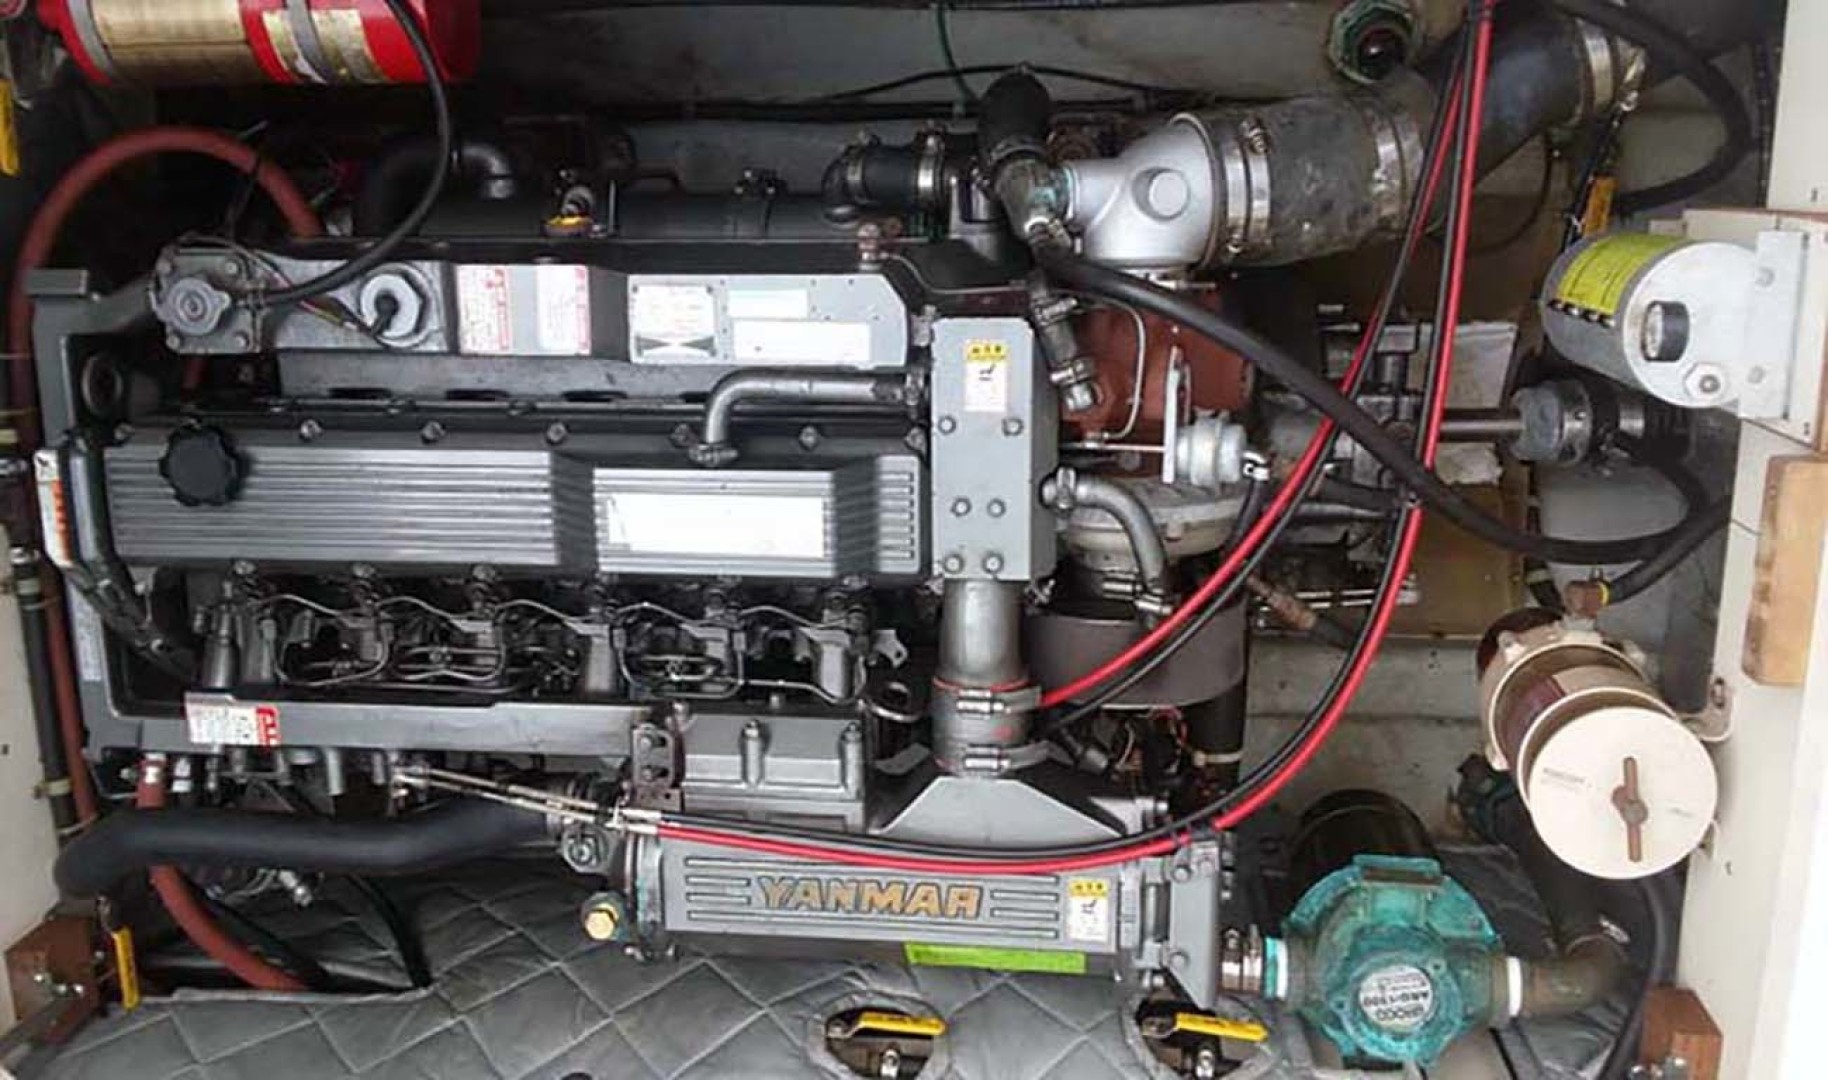 Dyer-29 Trunk Cabin Soft Top 1999-Clear Call Vero Beach-Florida-United States-Engine Room-1509410 | Thumbnail